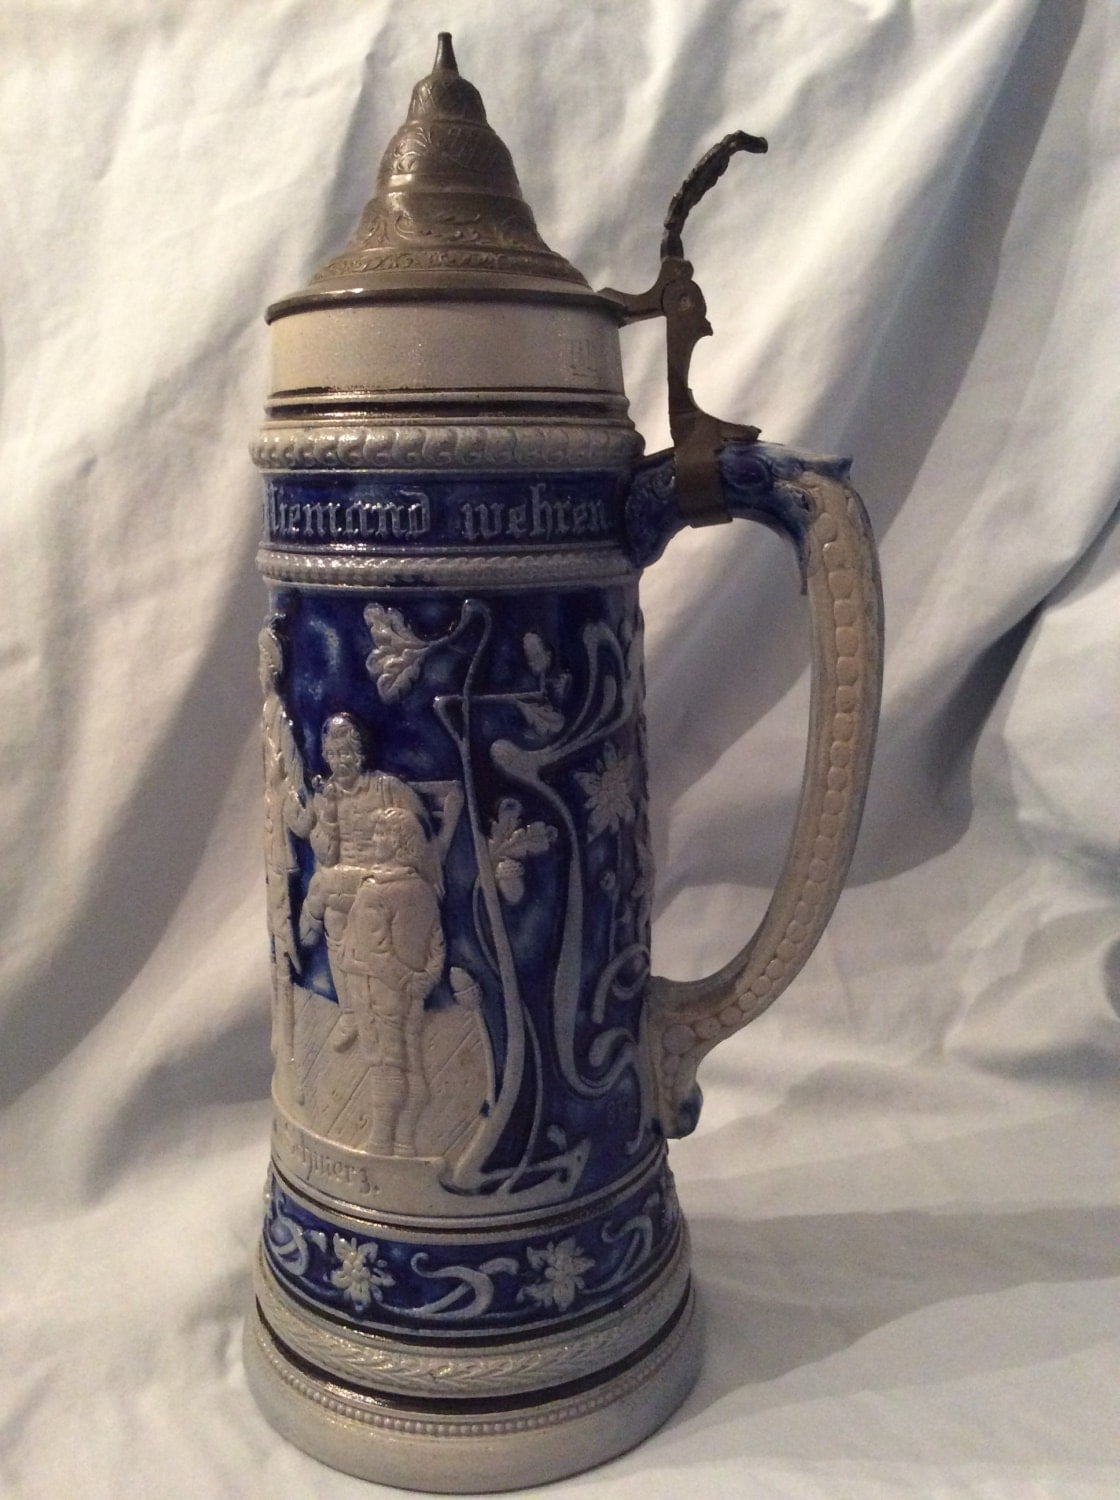 german beer stein 1 5 liter with lid cobalt blue and gray. Black Bedroom Furniture Sets. Home Design Ideas